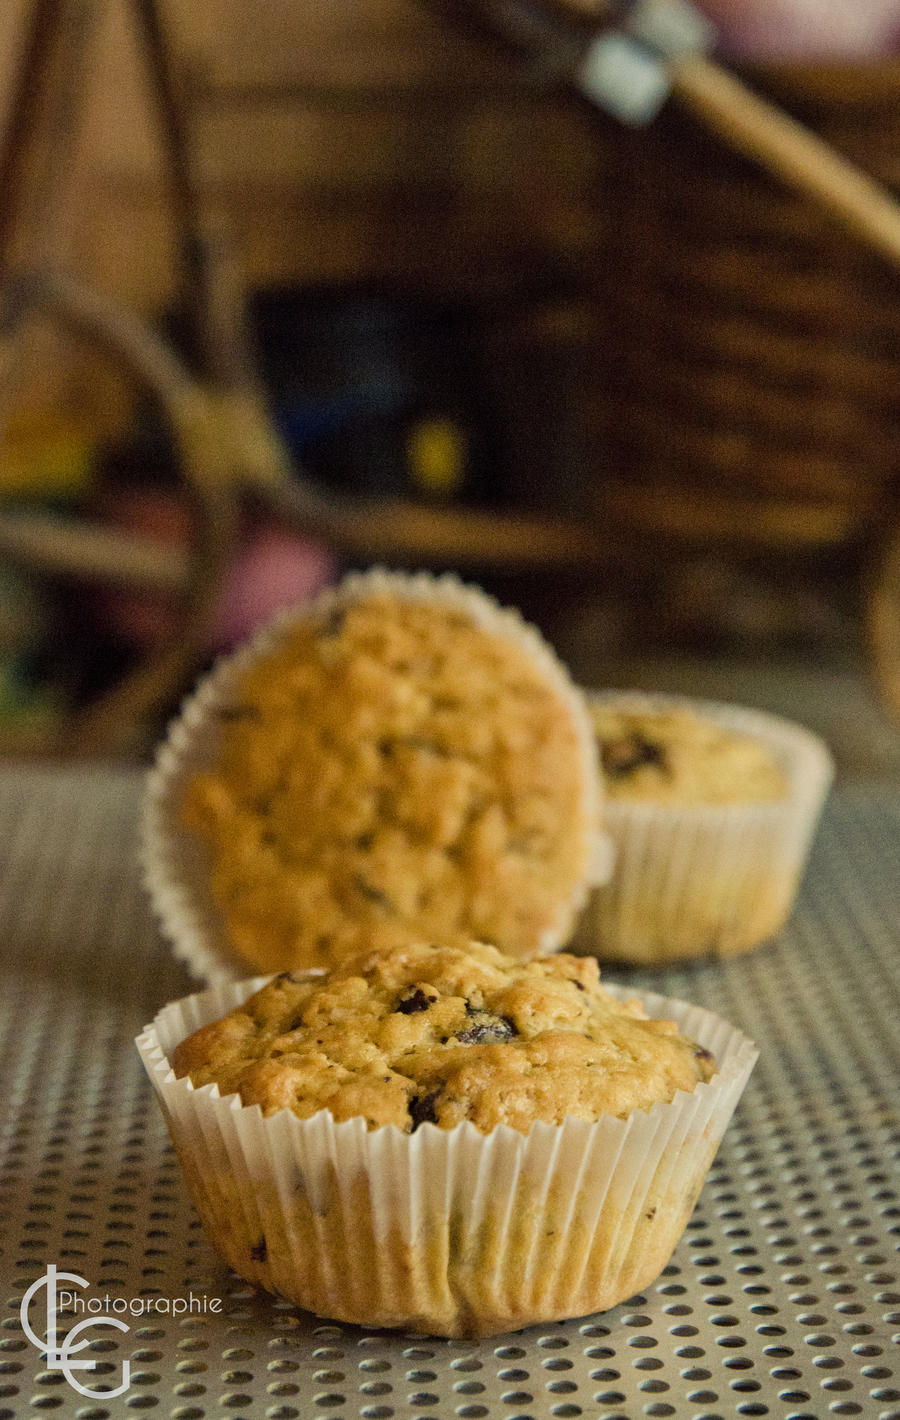 Muffins by ClaraLG